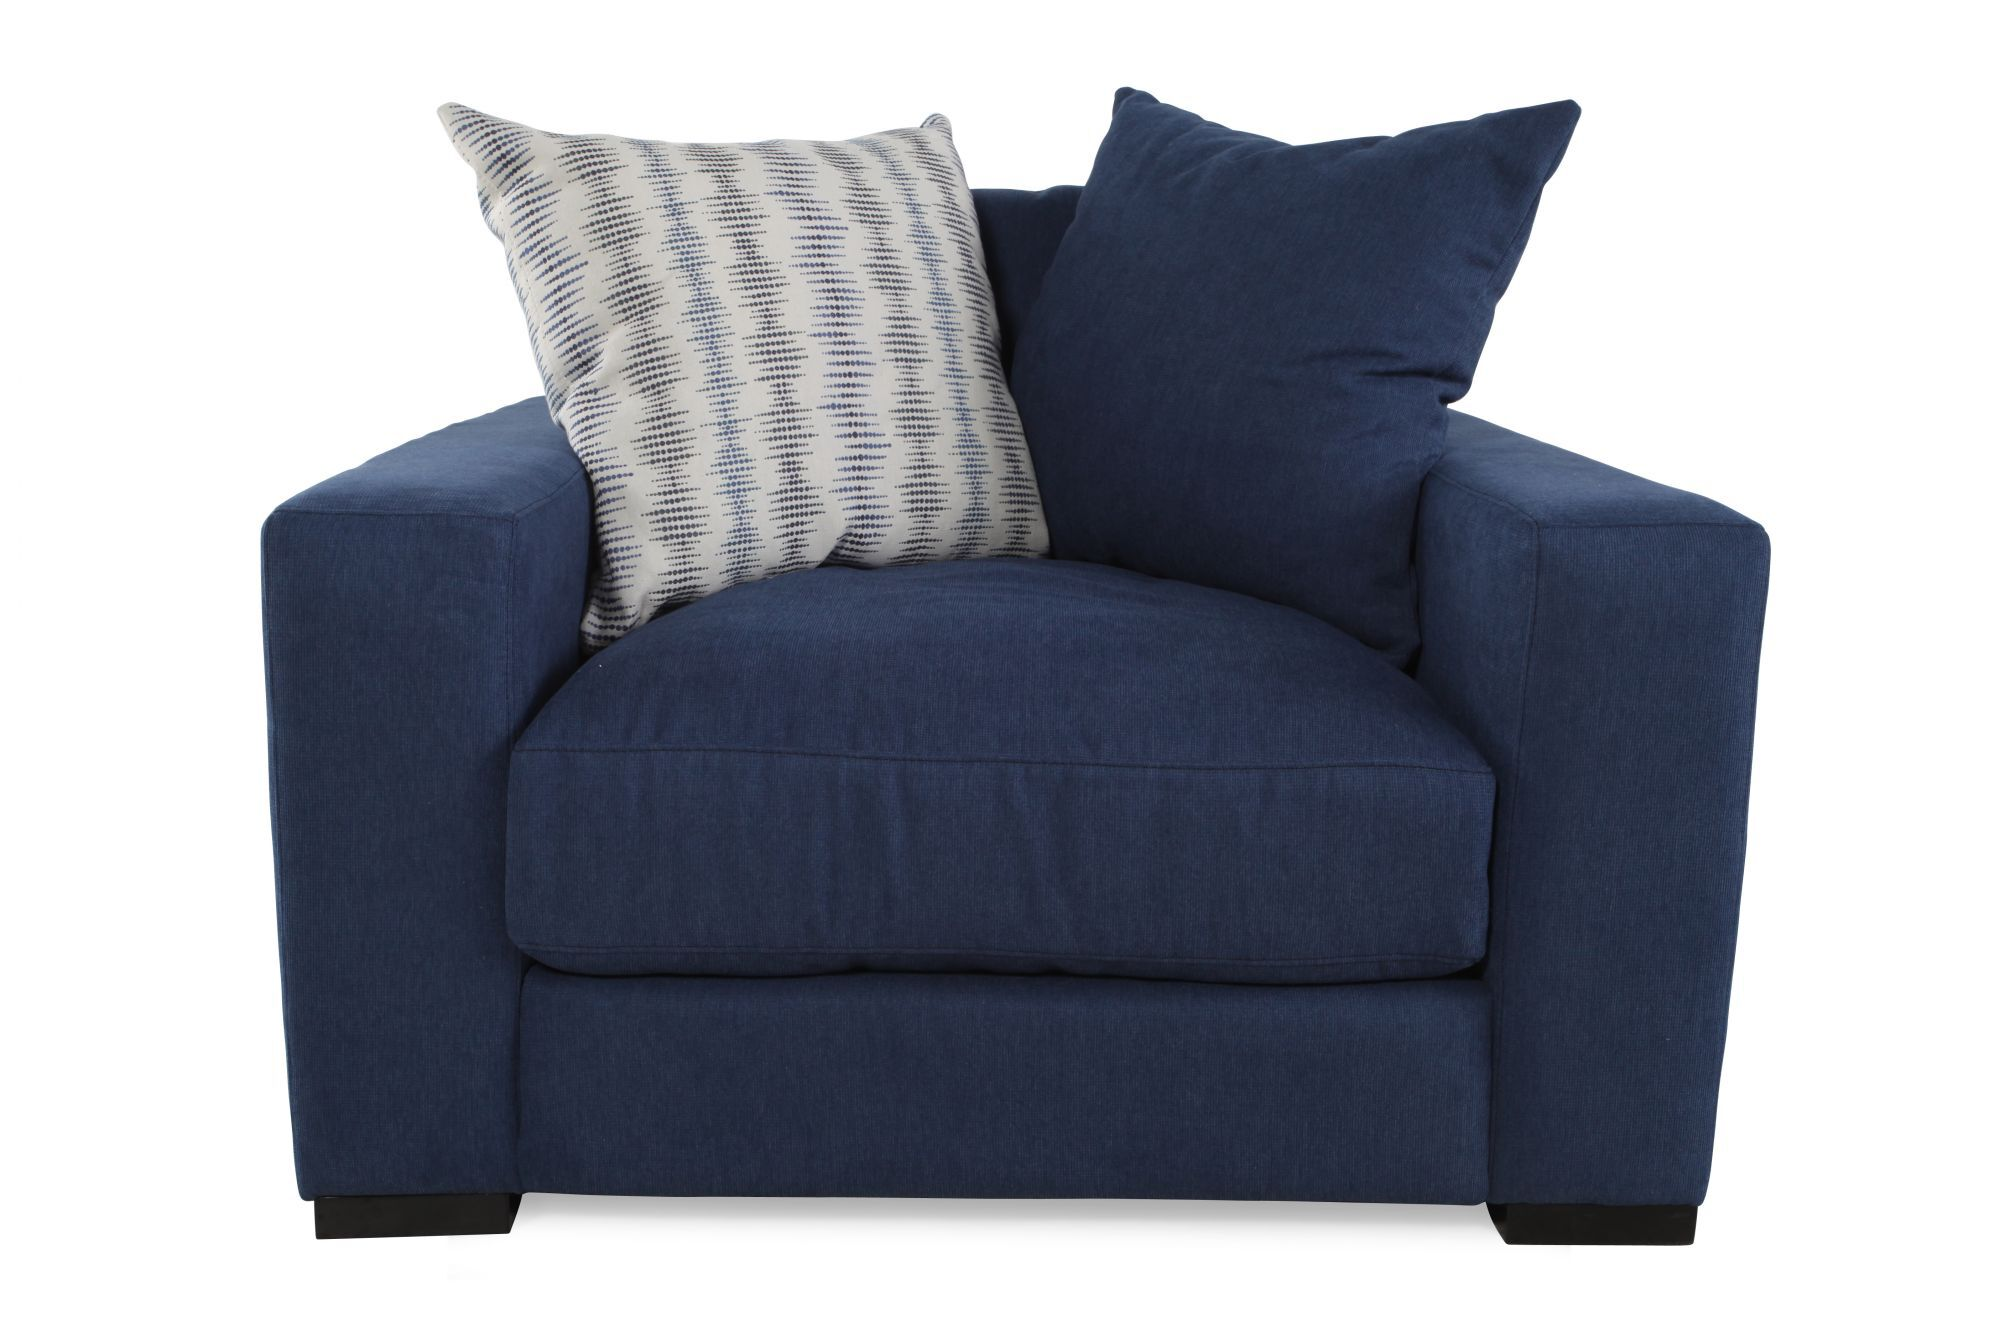 LowProfile Casual Arm Chair in Blue  Mathis Brothers Furniture